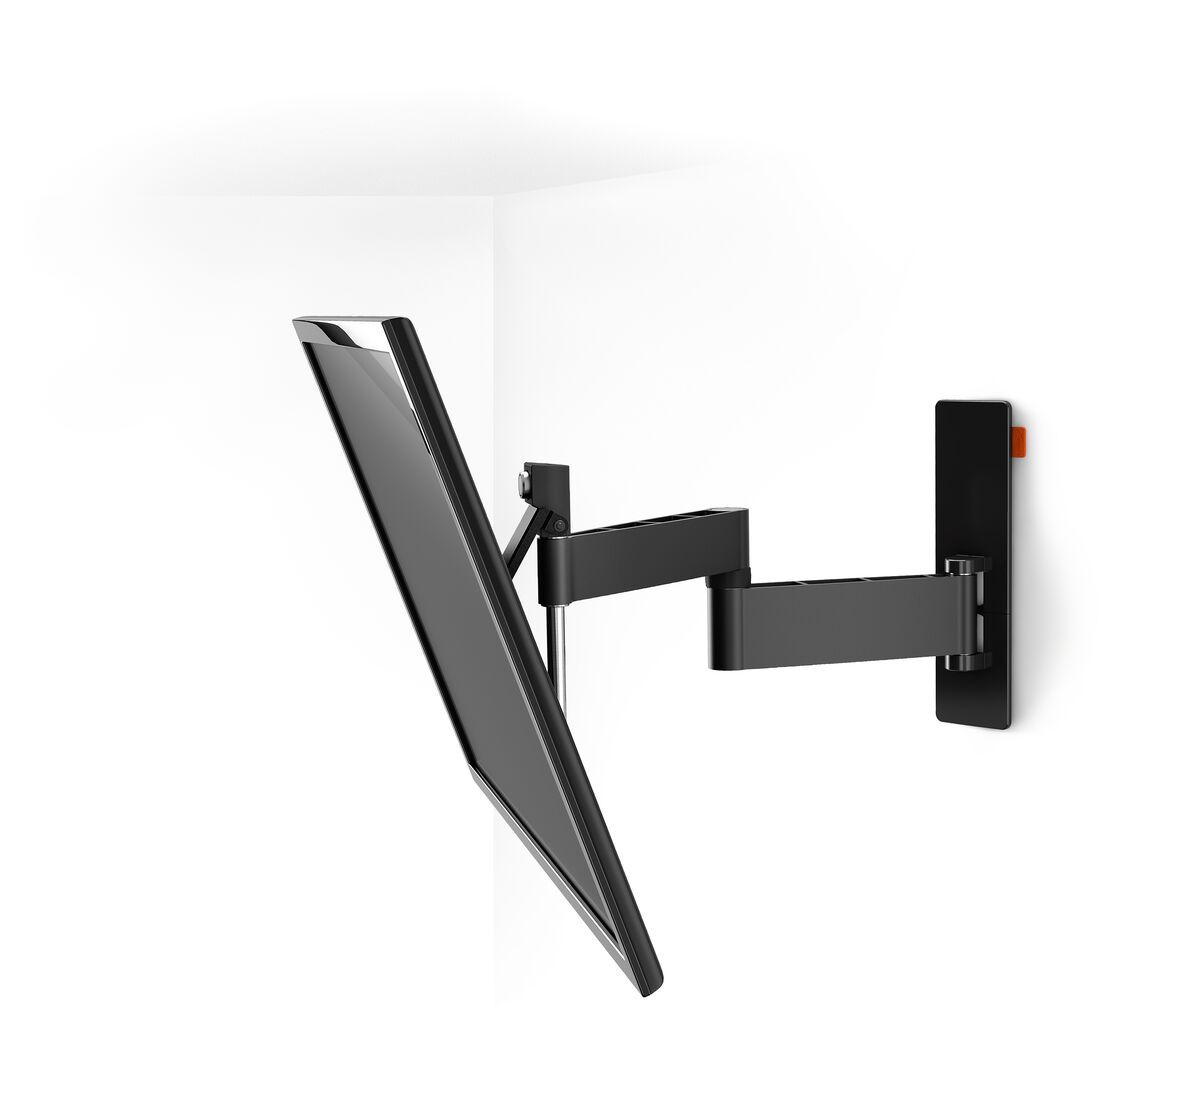 Vogel's WALL 2245 Full-Motion TV Wall Mount (black) - Suitable for 32 up to 55 inch TVs - Up to 180° - Tilt up to 20° - White wall